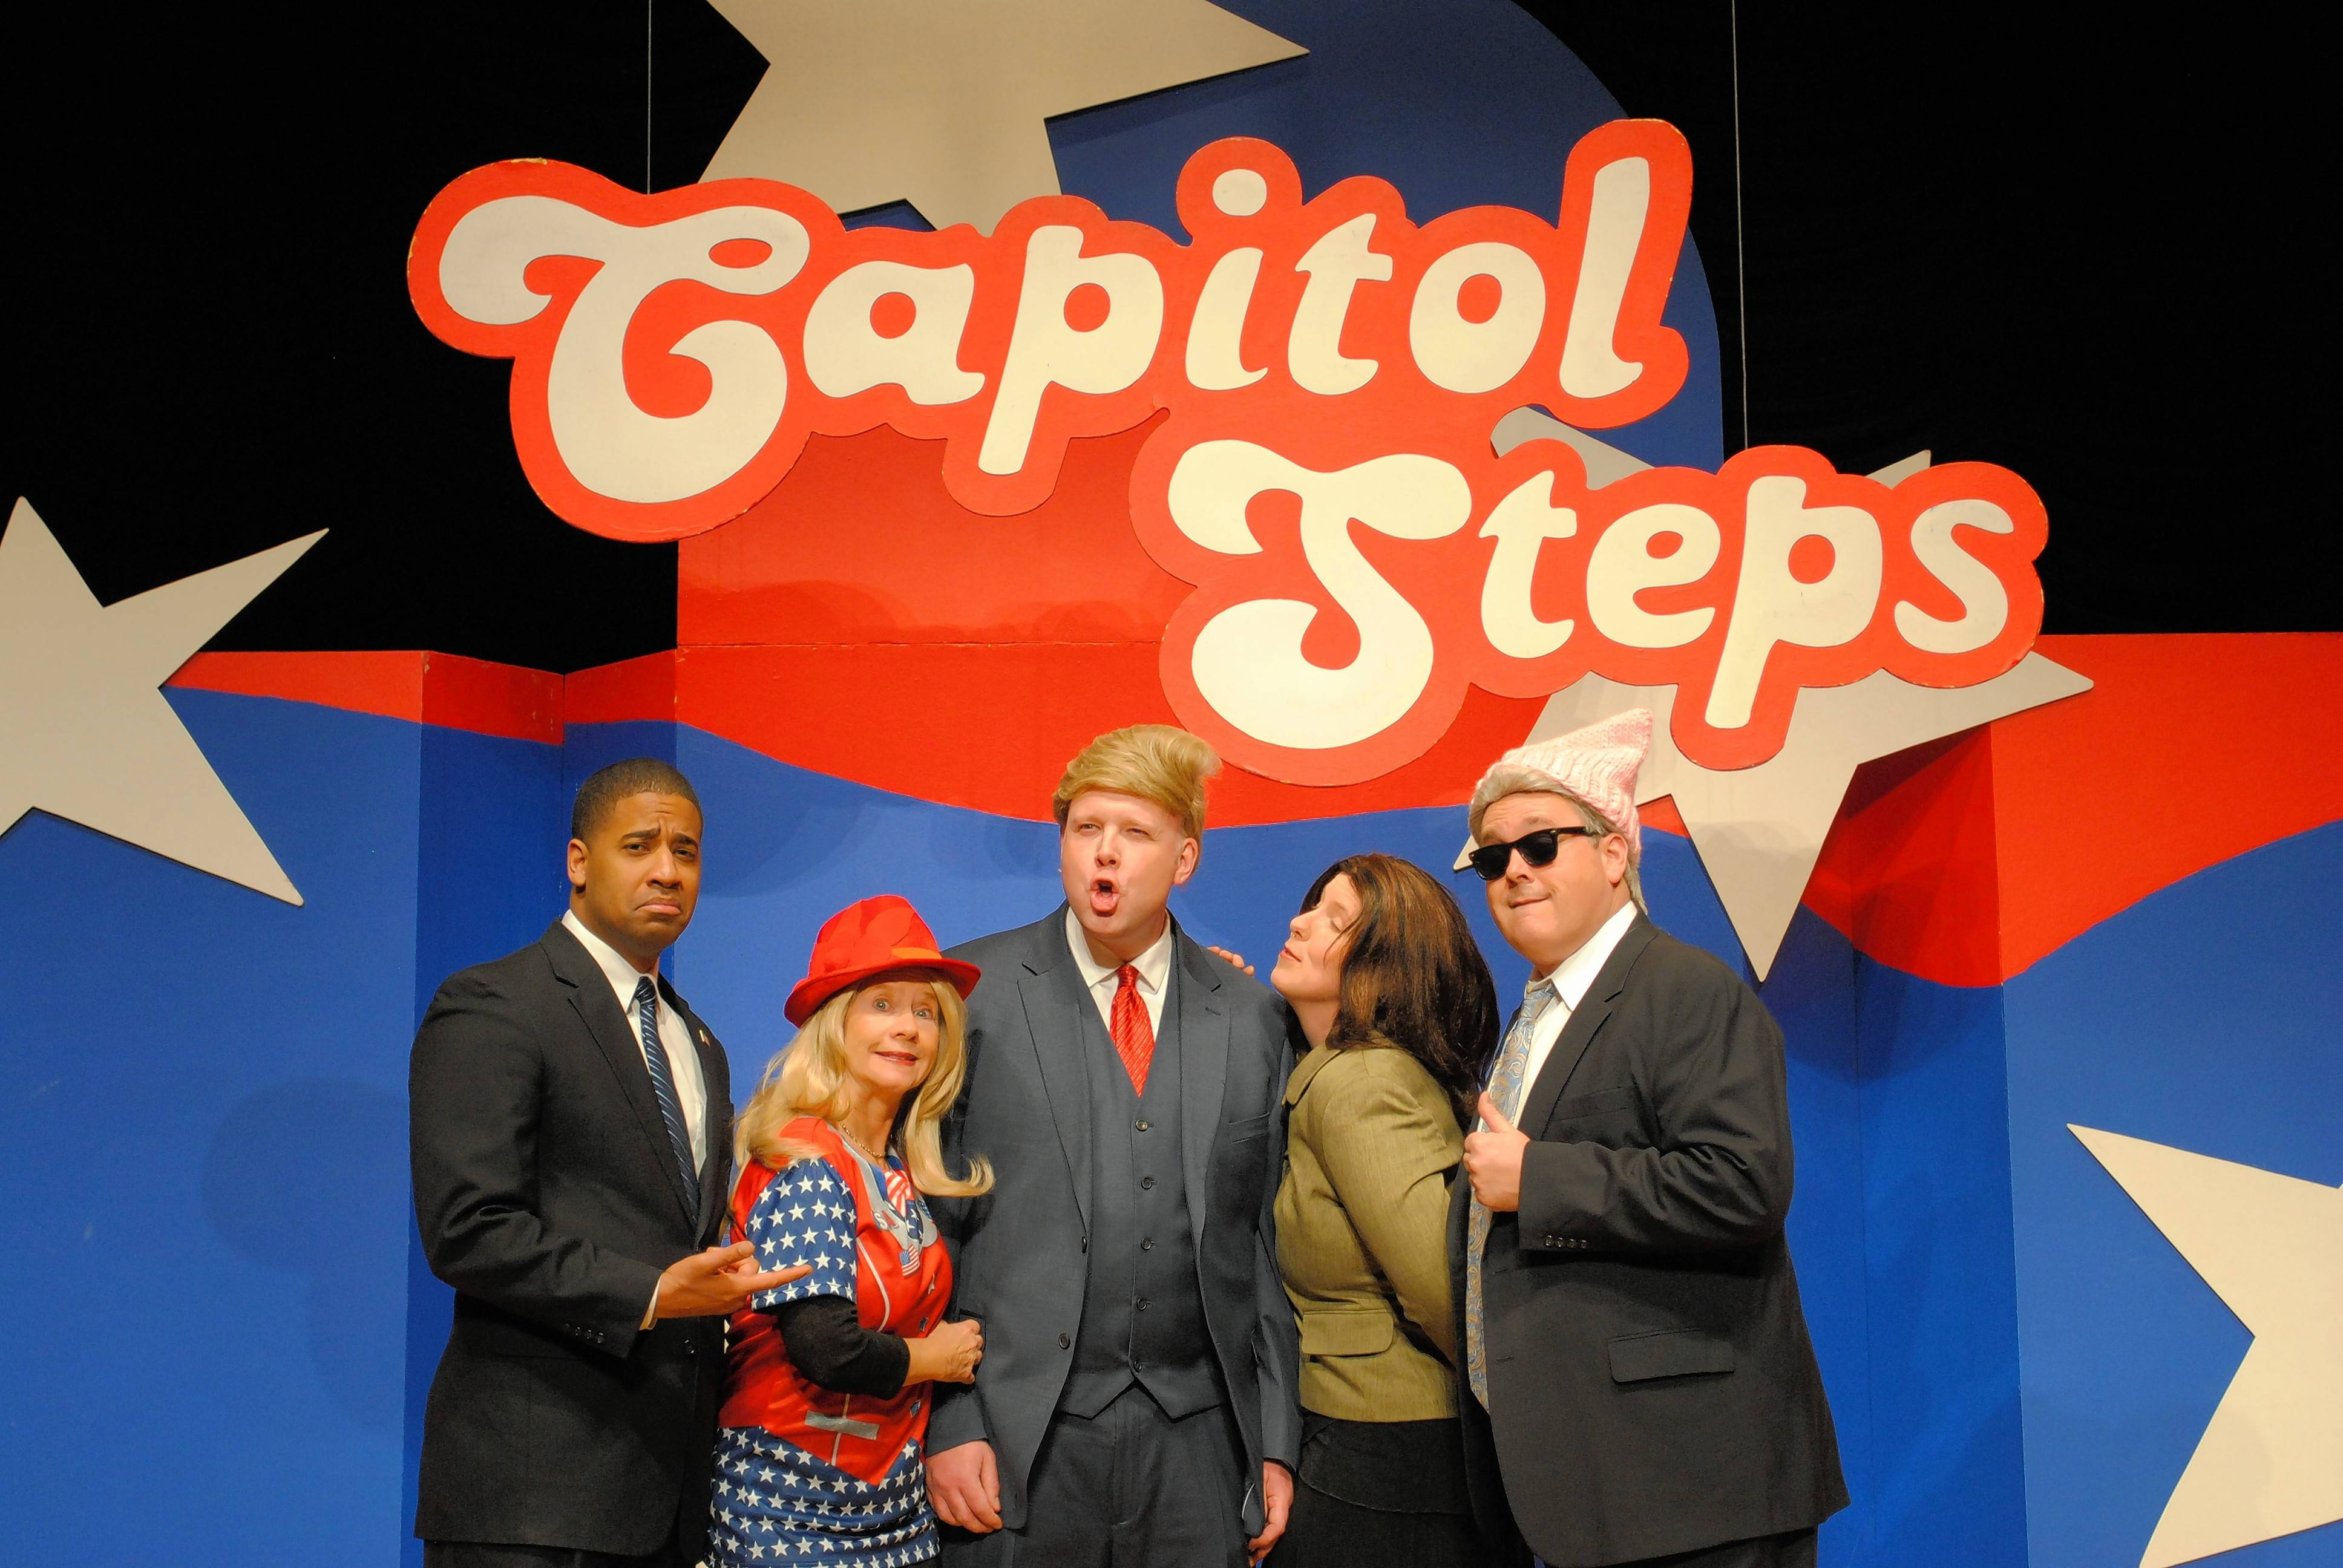 The satirical comedy ensemble Capitol Steps perform Saturday at the McAninch Arts Center in Glen Ellyn.